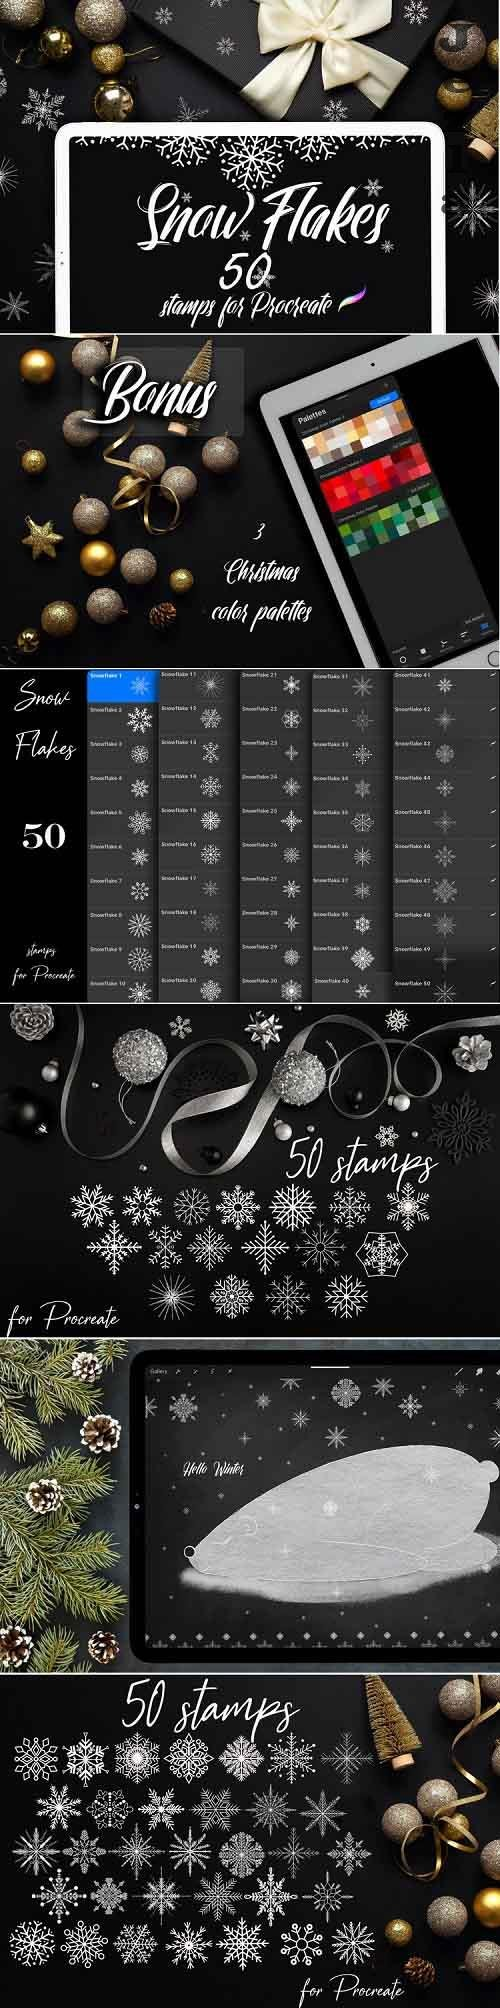 50 Snowflake Stamps for Procreate - 1029308 - Hello Winter!